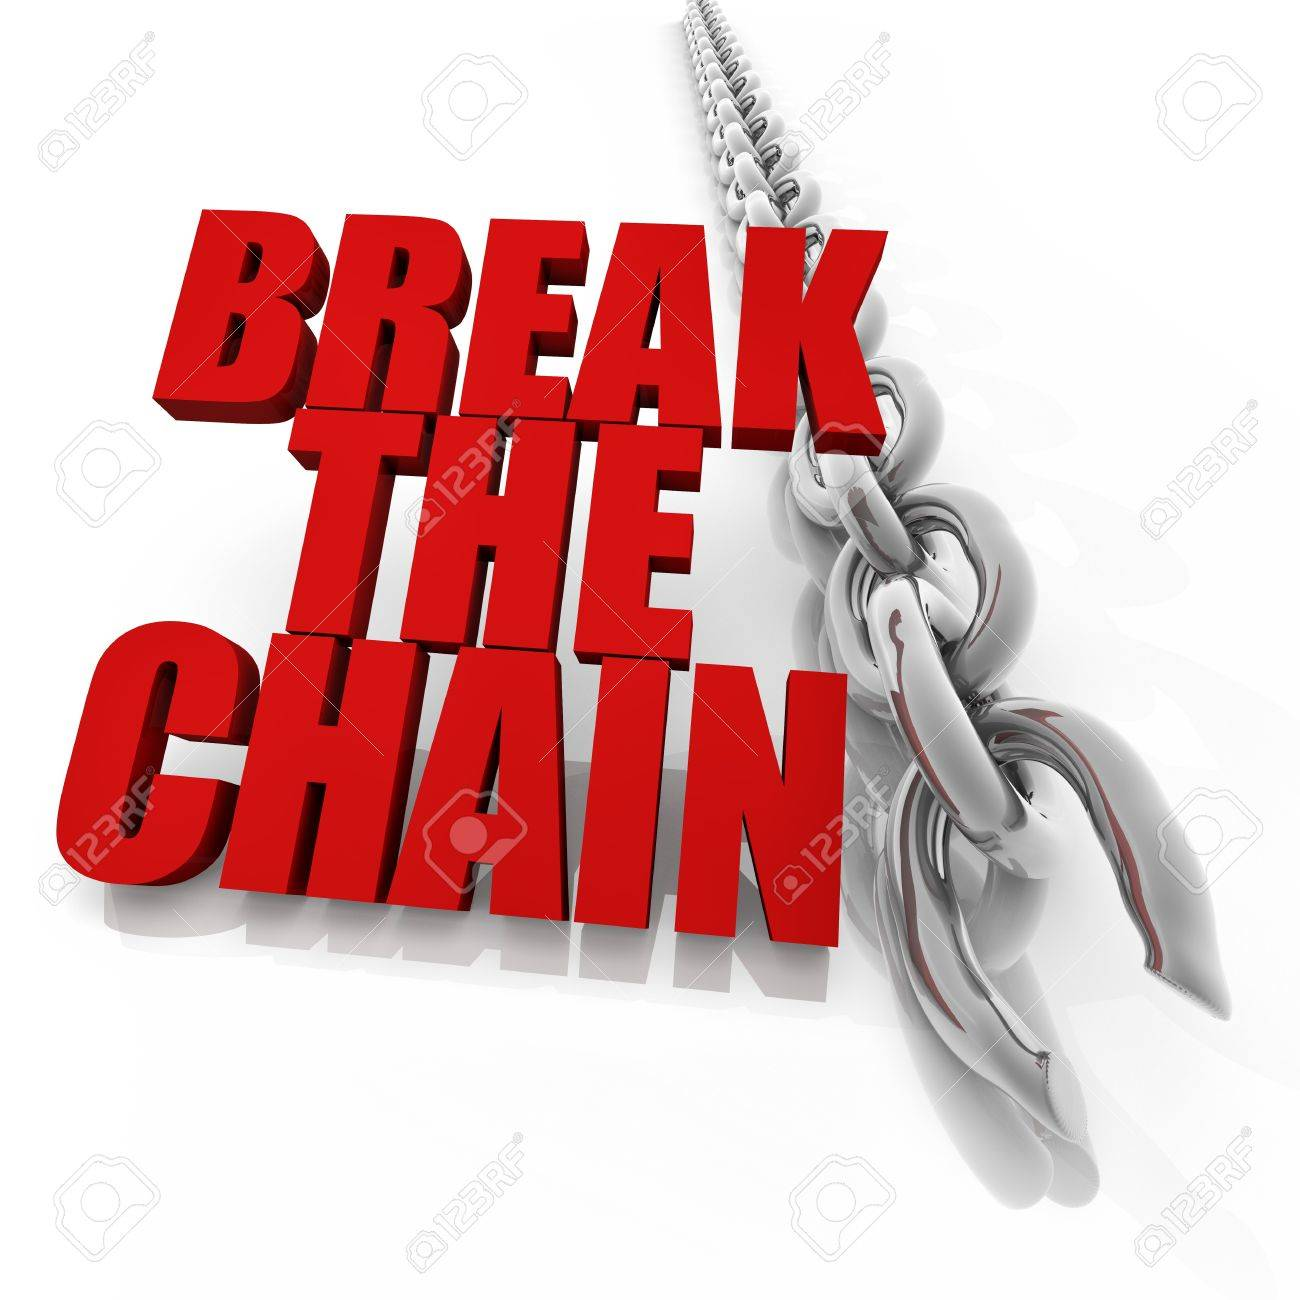 Broken chrome chain on white background, freedom concept image Stock Photo - 13496102